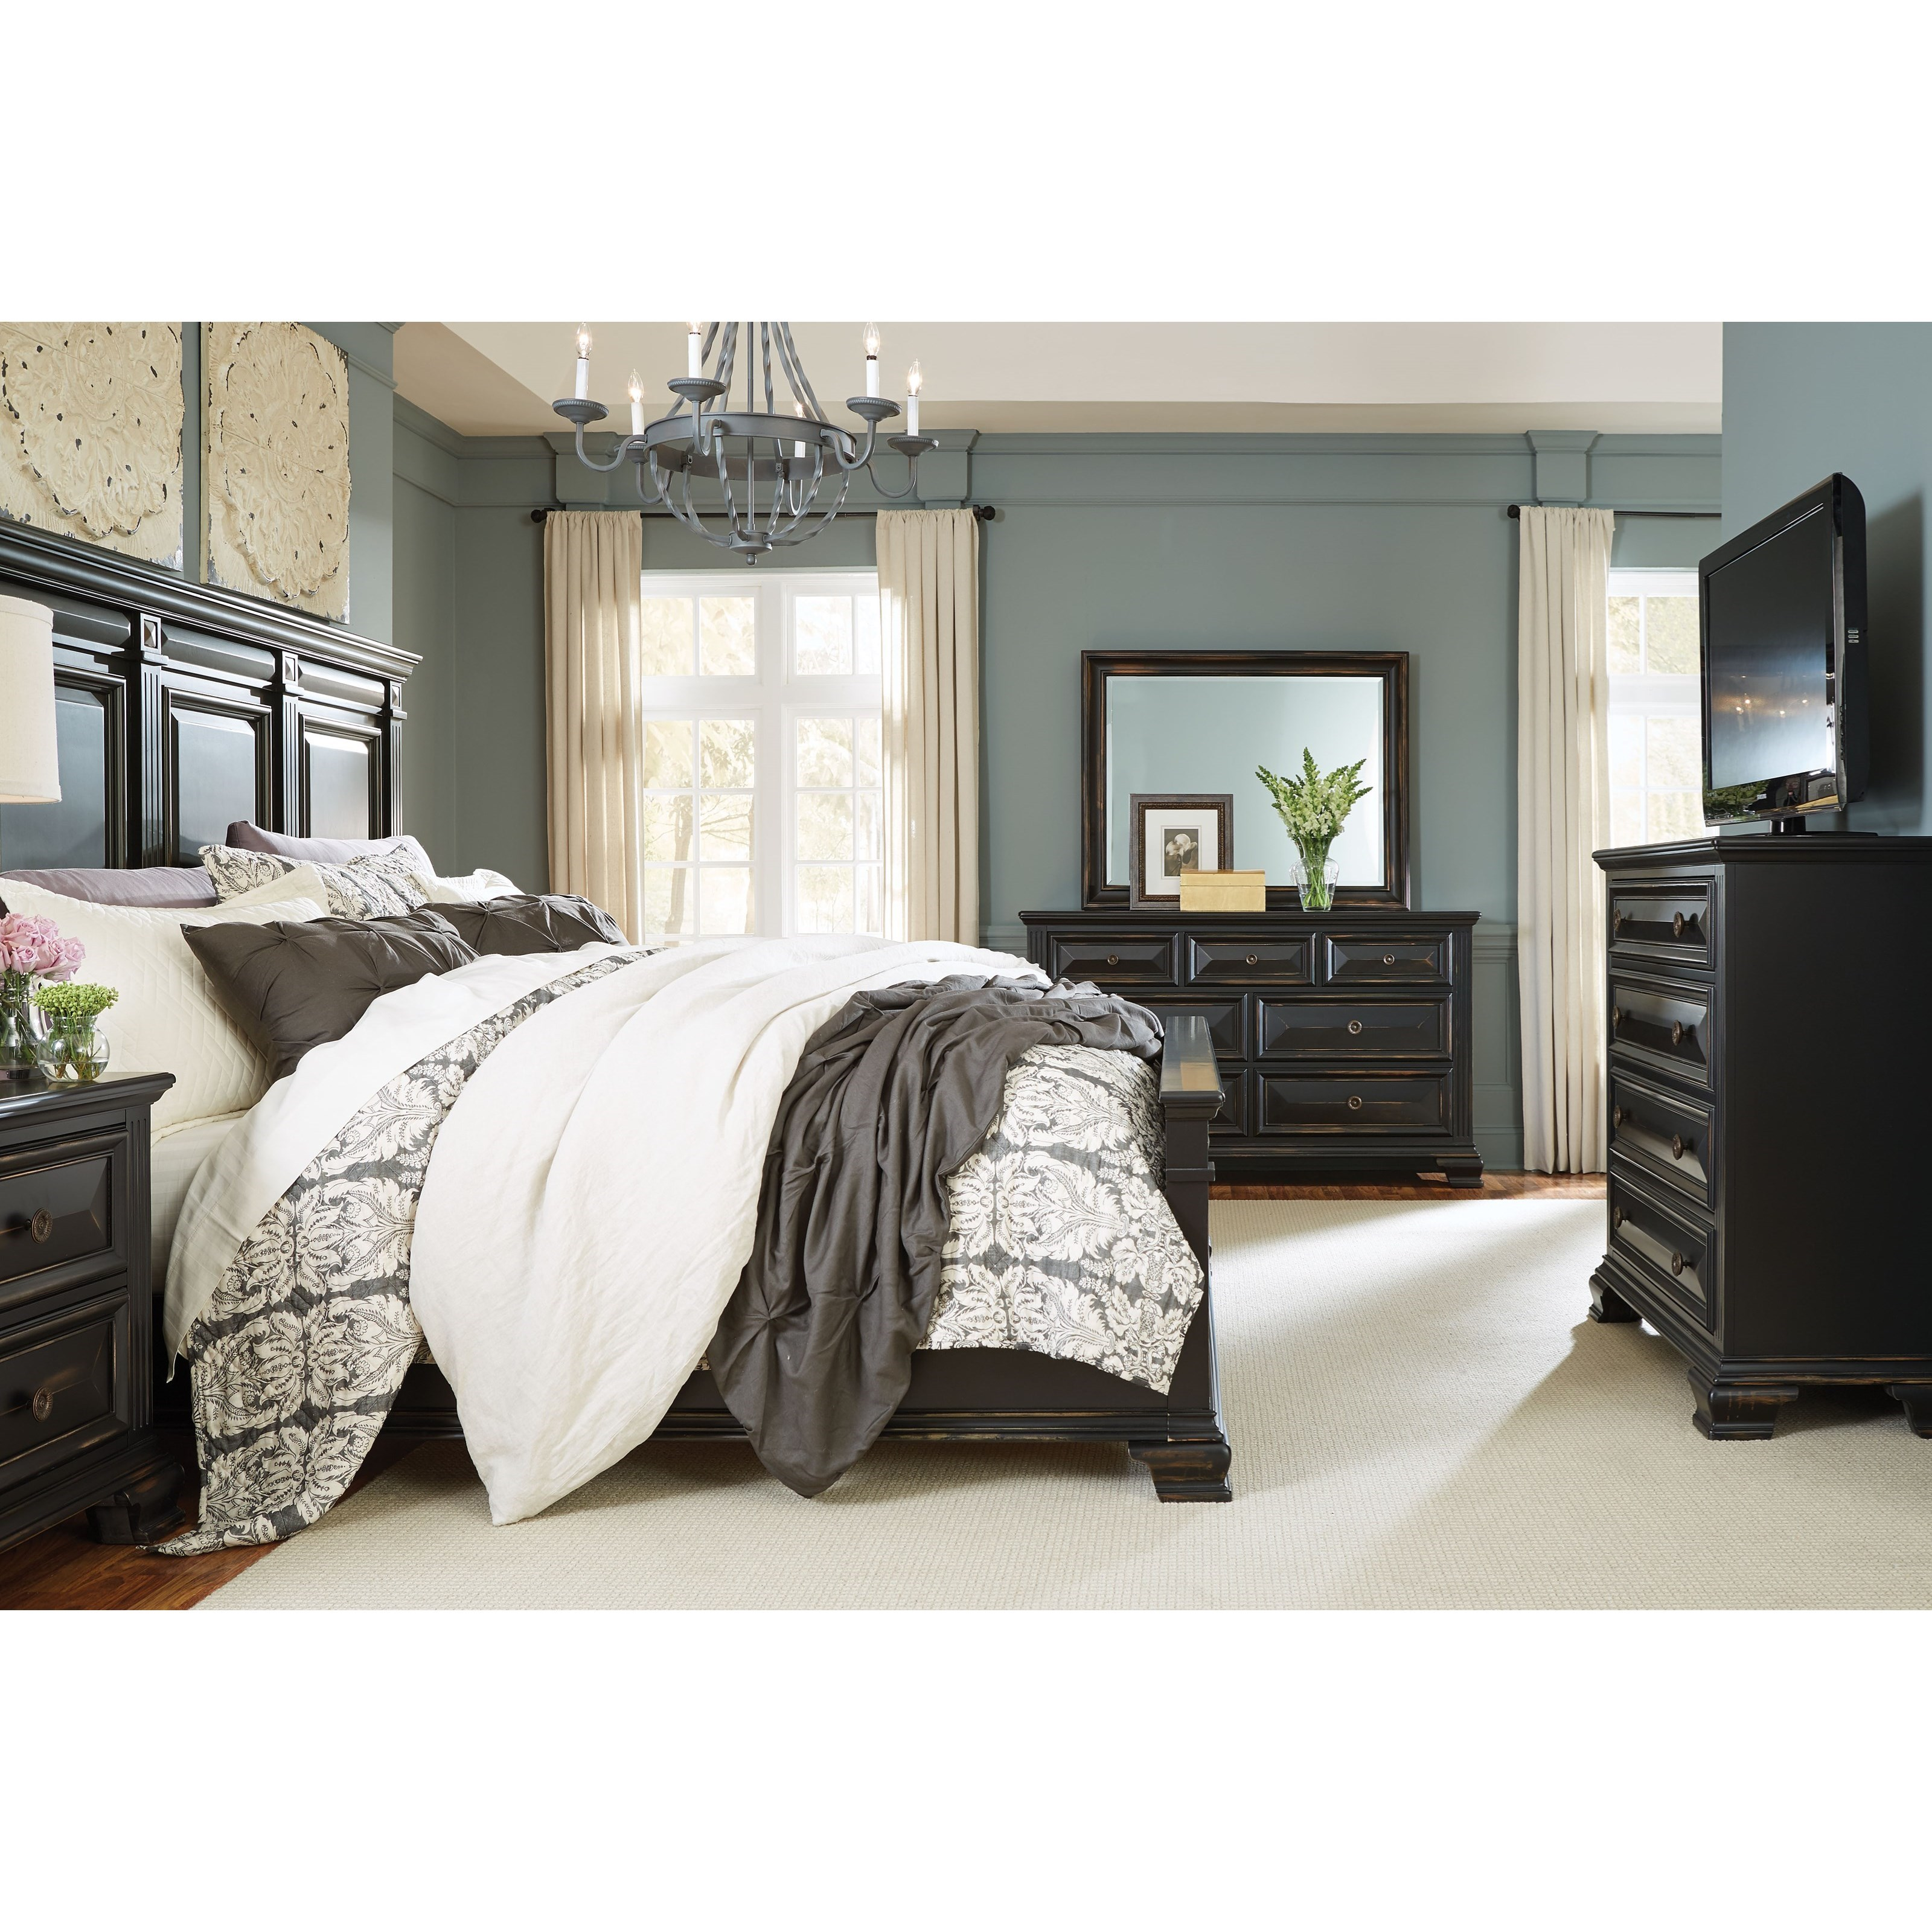 Standard Furniture Passages Queen Bedroom Group Olinde 39 S Furniture Bedroom Groups